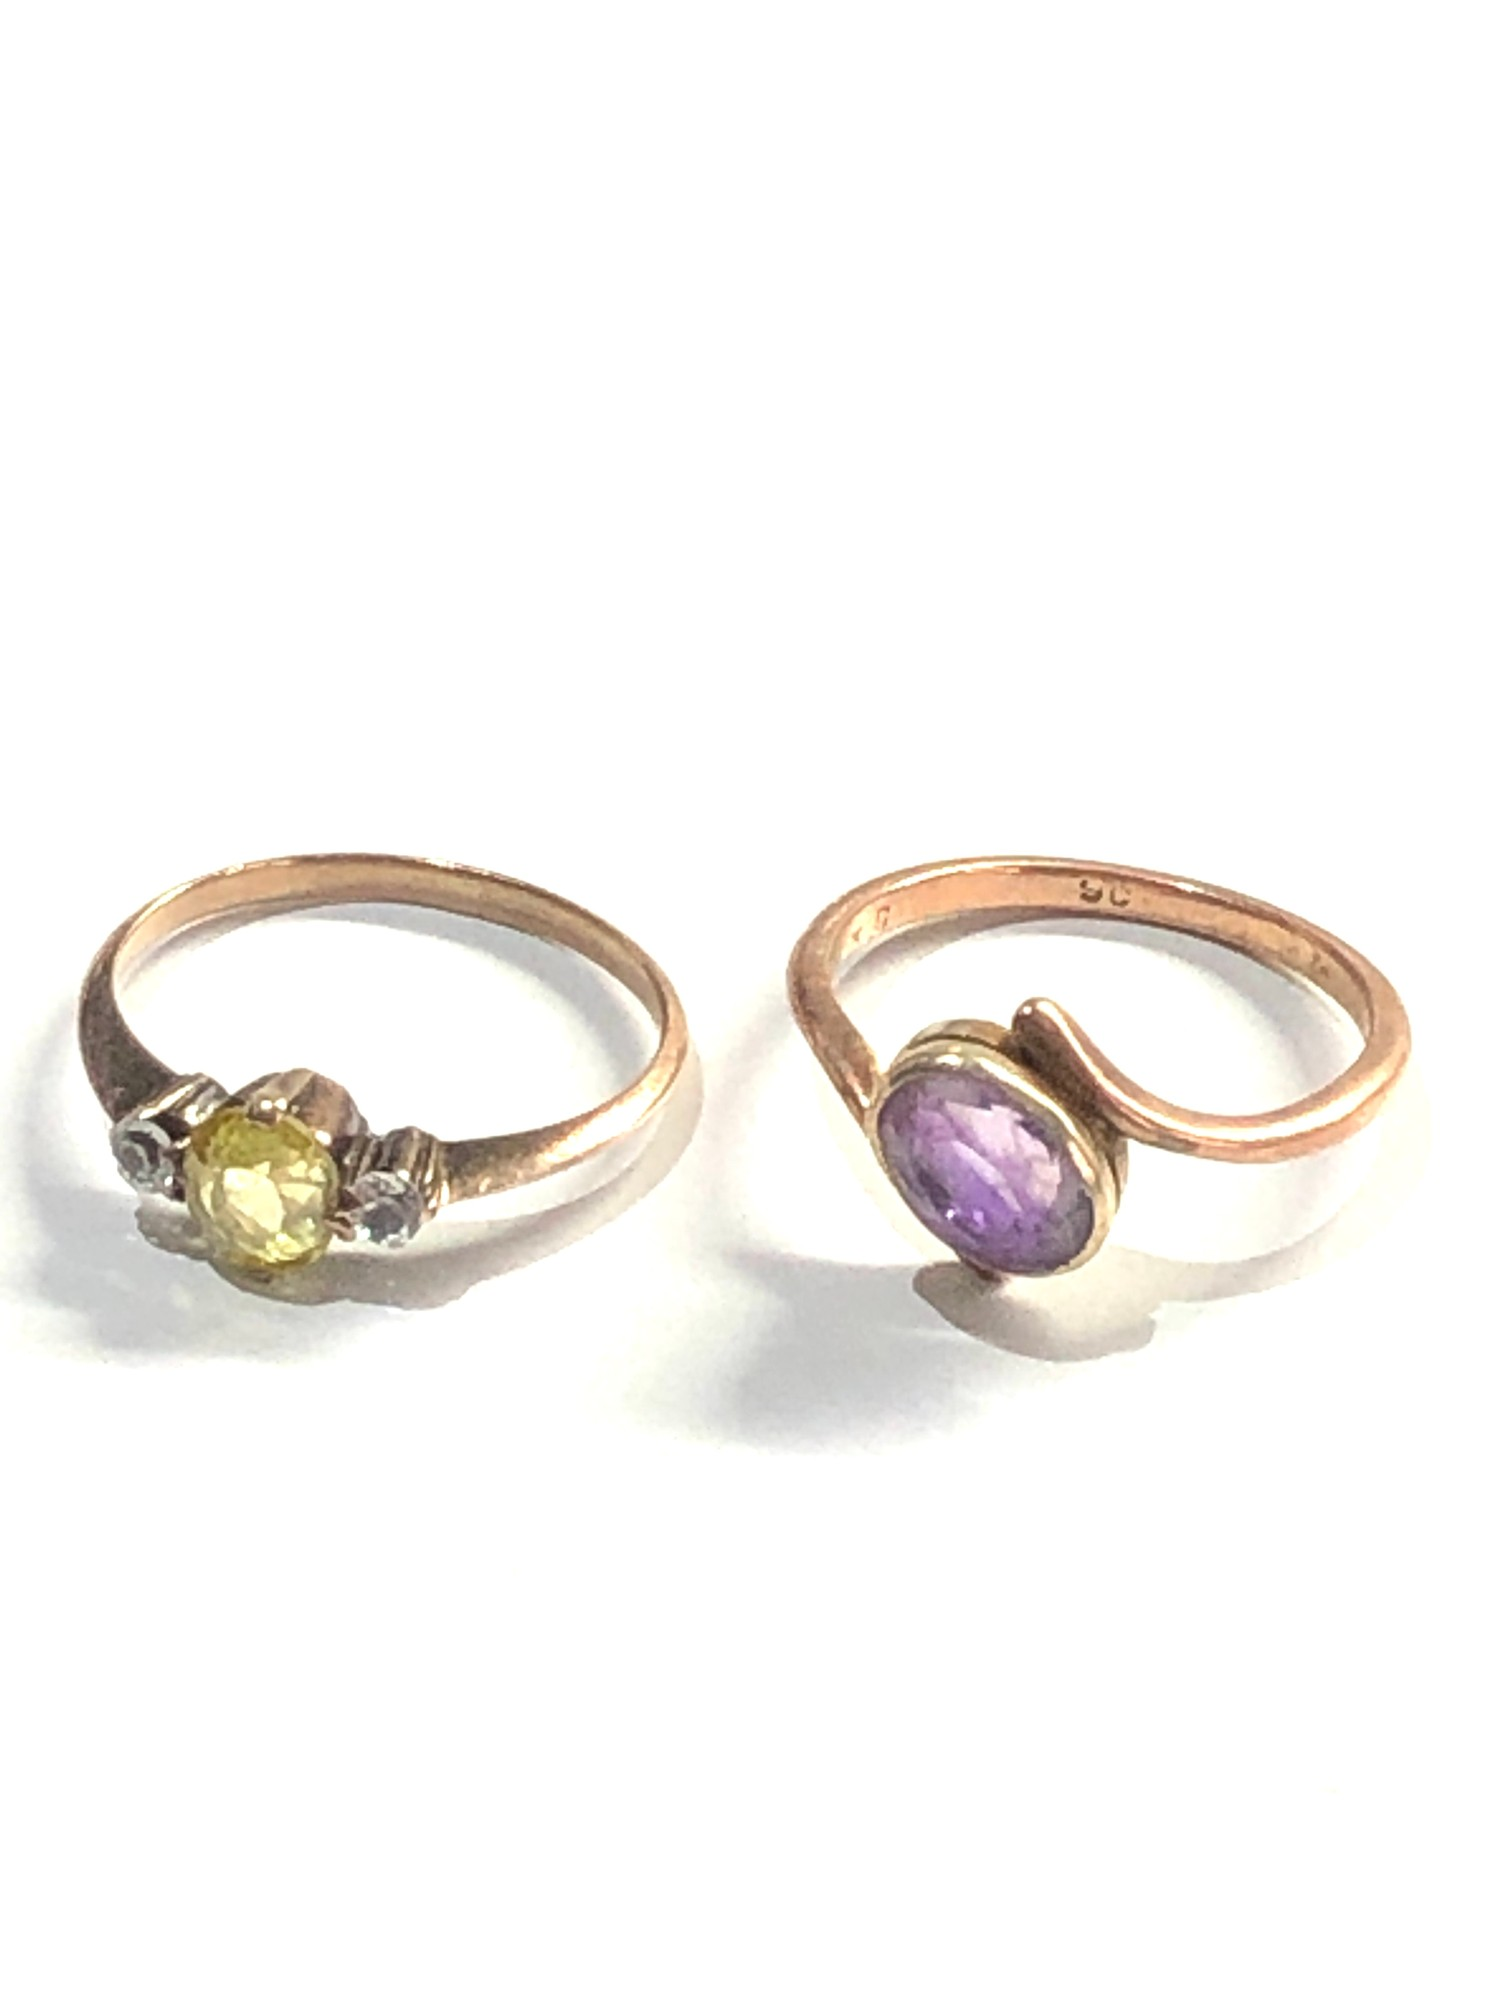 2 x 9ct Gold dress rings 3.7g - Image 3 of 4